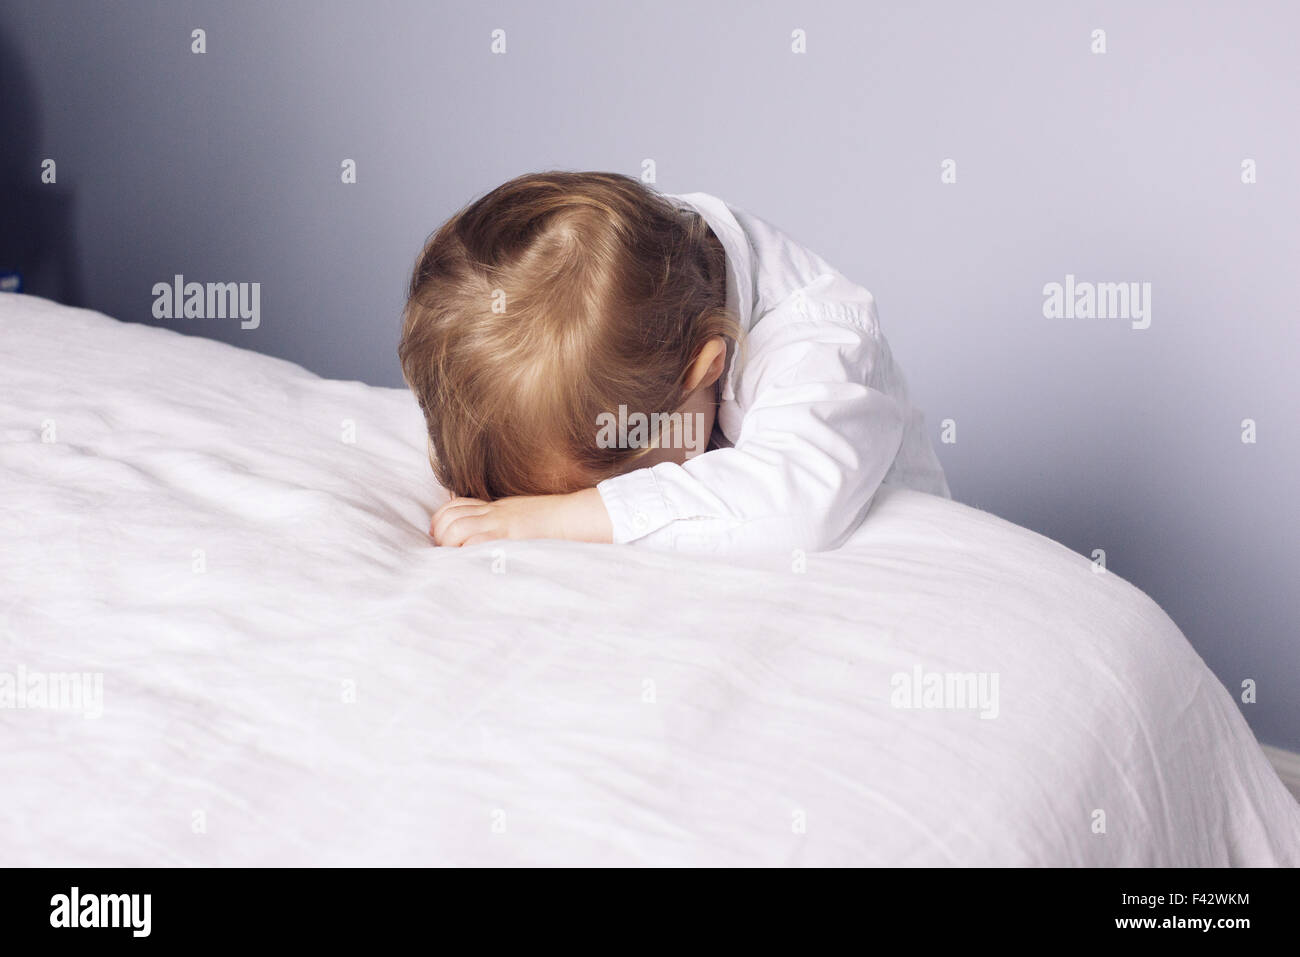 Little boy resting head on bed - Stock Image